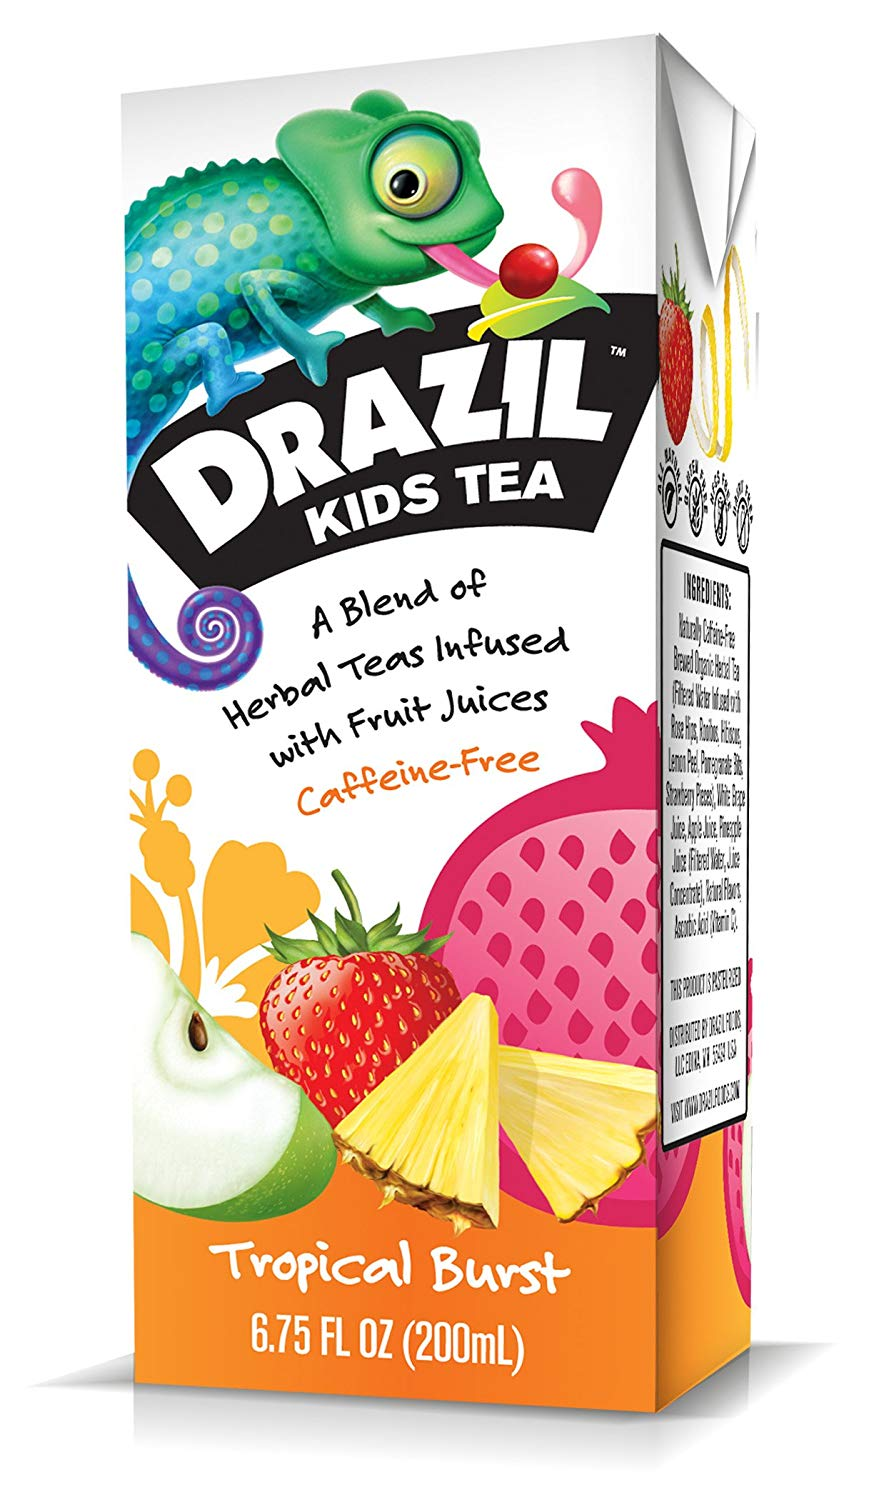 Drazil Kids Tea, Tropical Burst, 6.75 Ounce Boxes (Pack of 32), Individually Packaged Juice-Box Style Iced Herbal Tea Infused with Fruit Juices, Caffeine-Free Gluten-Free, No Added Sugar